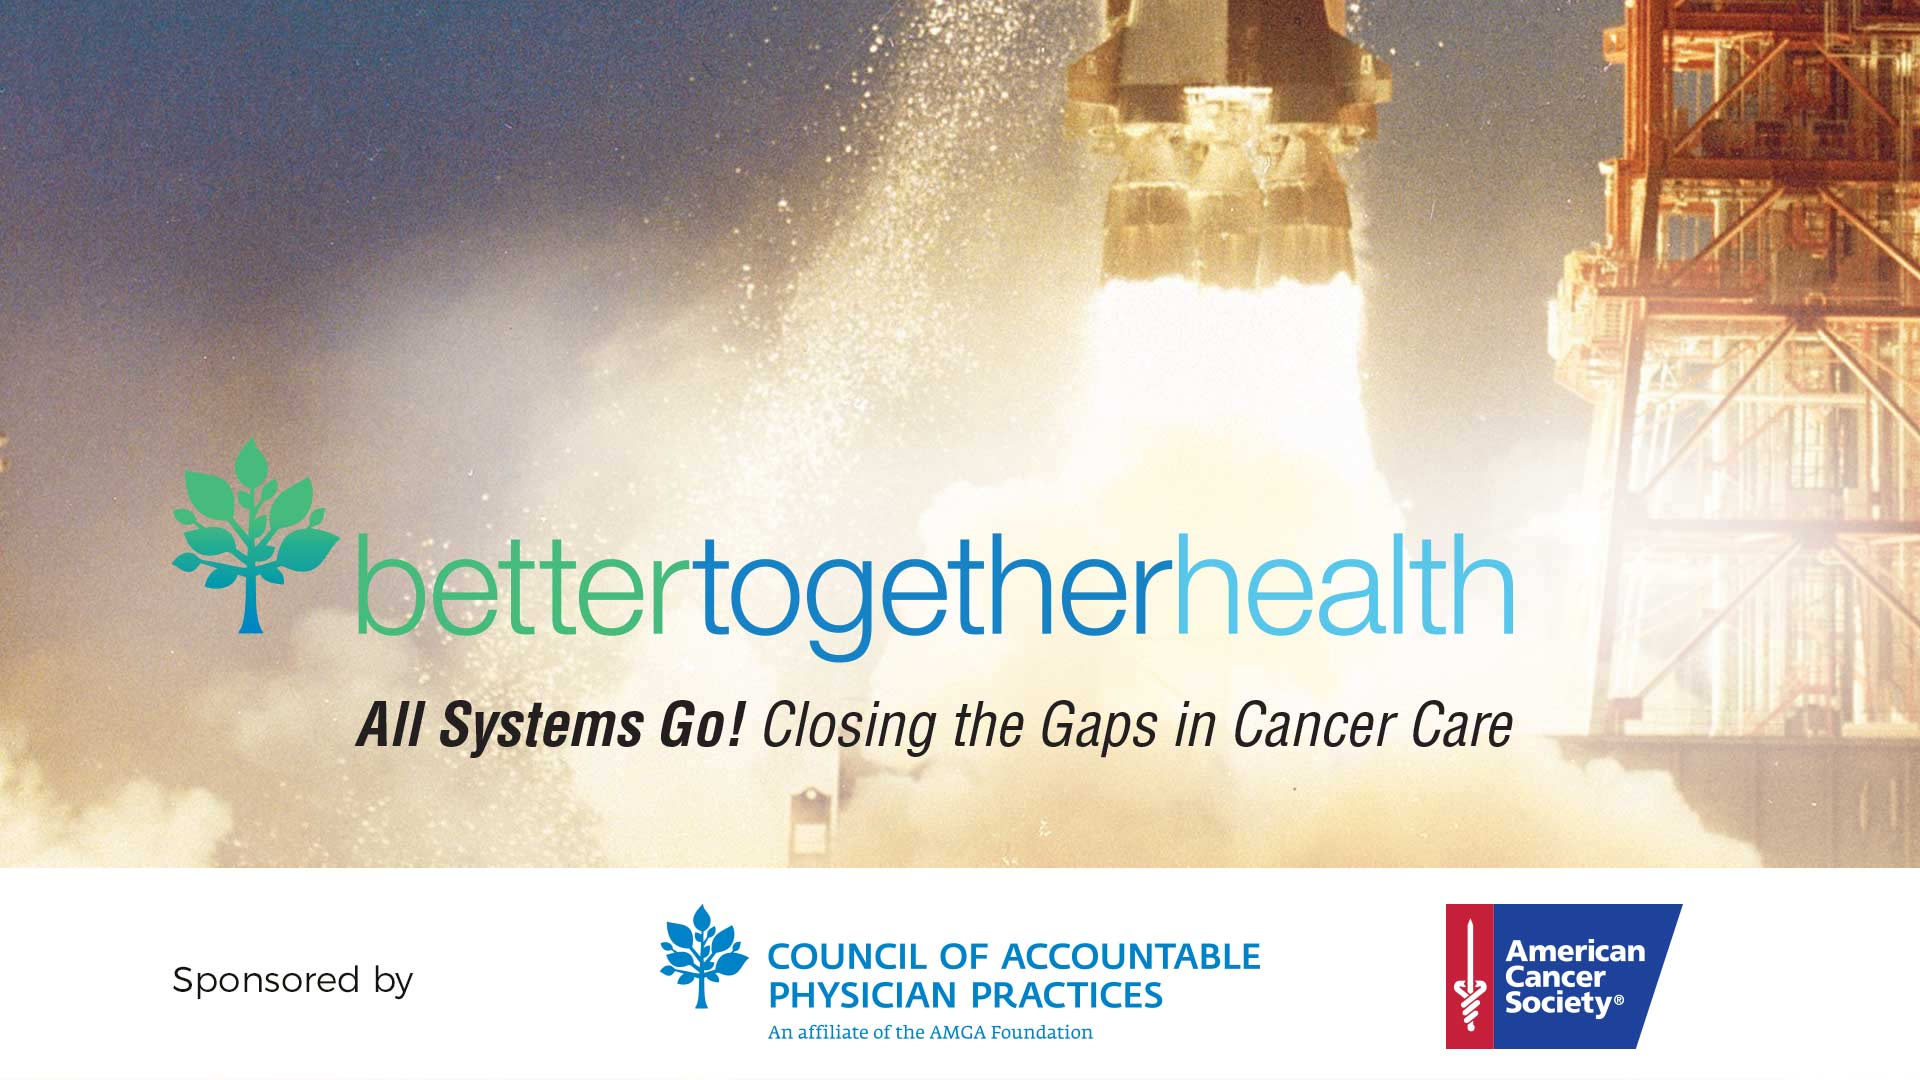 Better Together Health 2017: All Systems Go! Closing the Cancer Care Gap